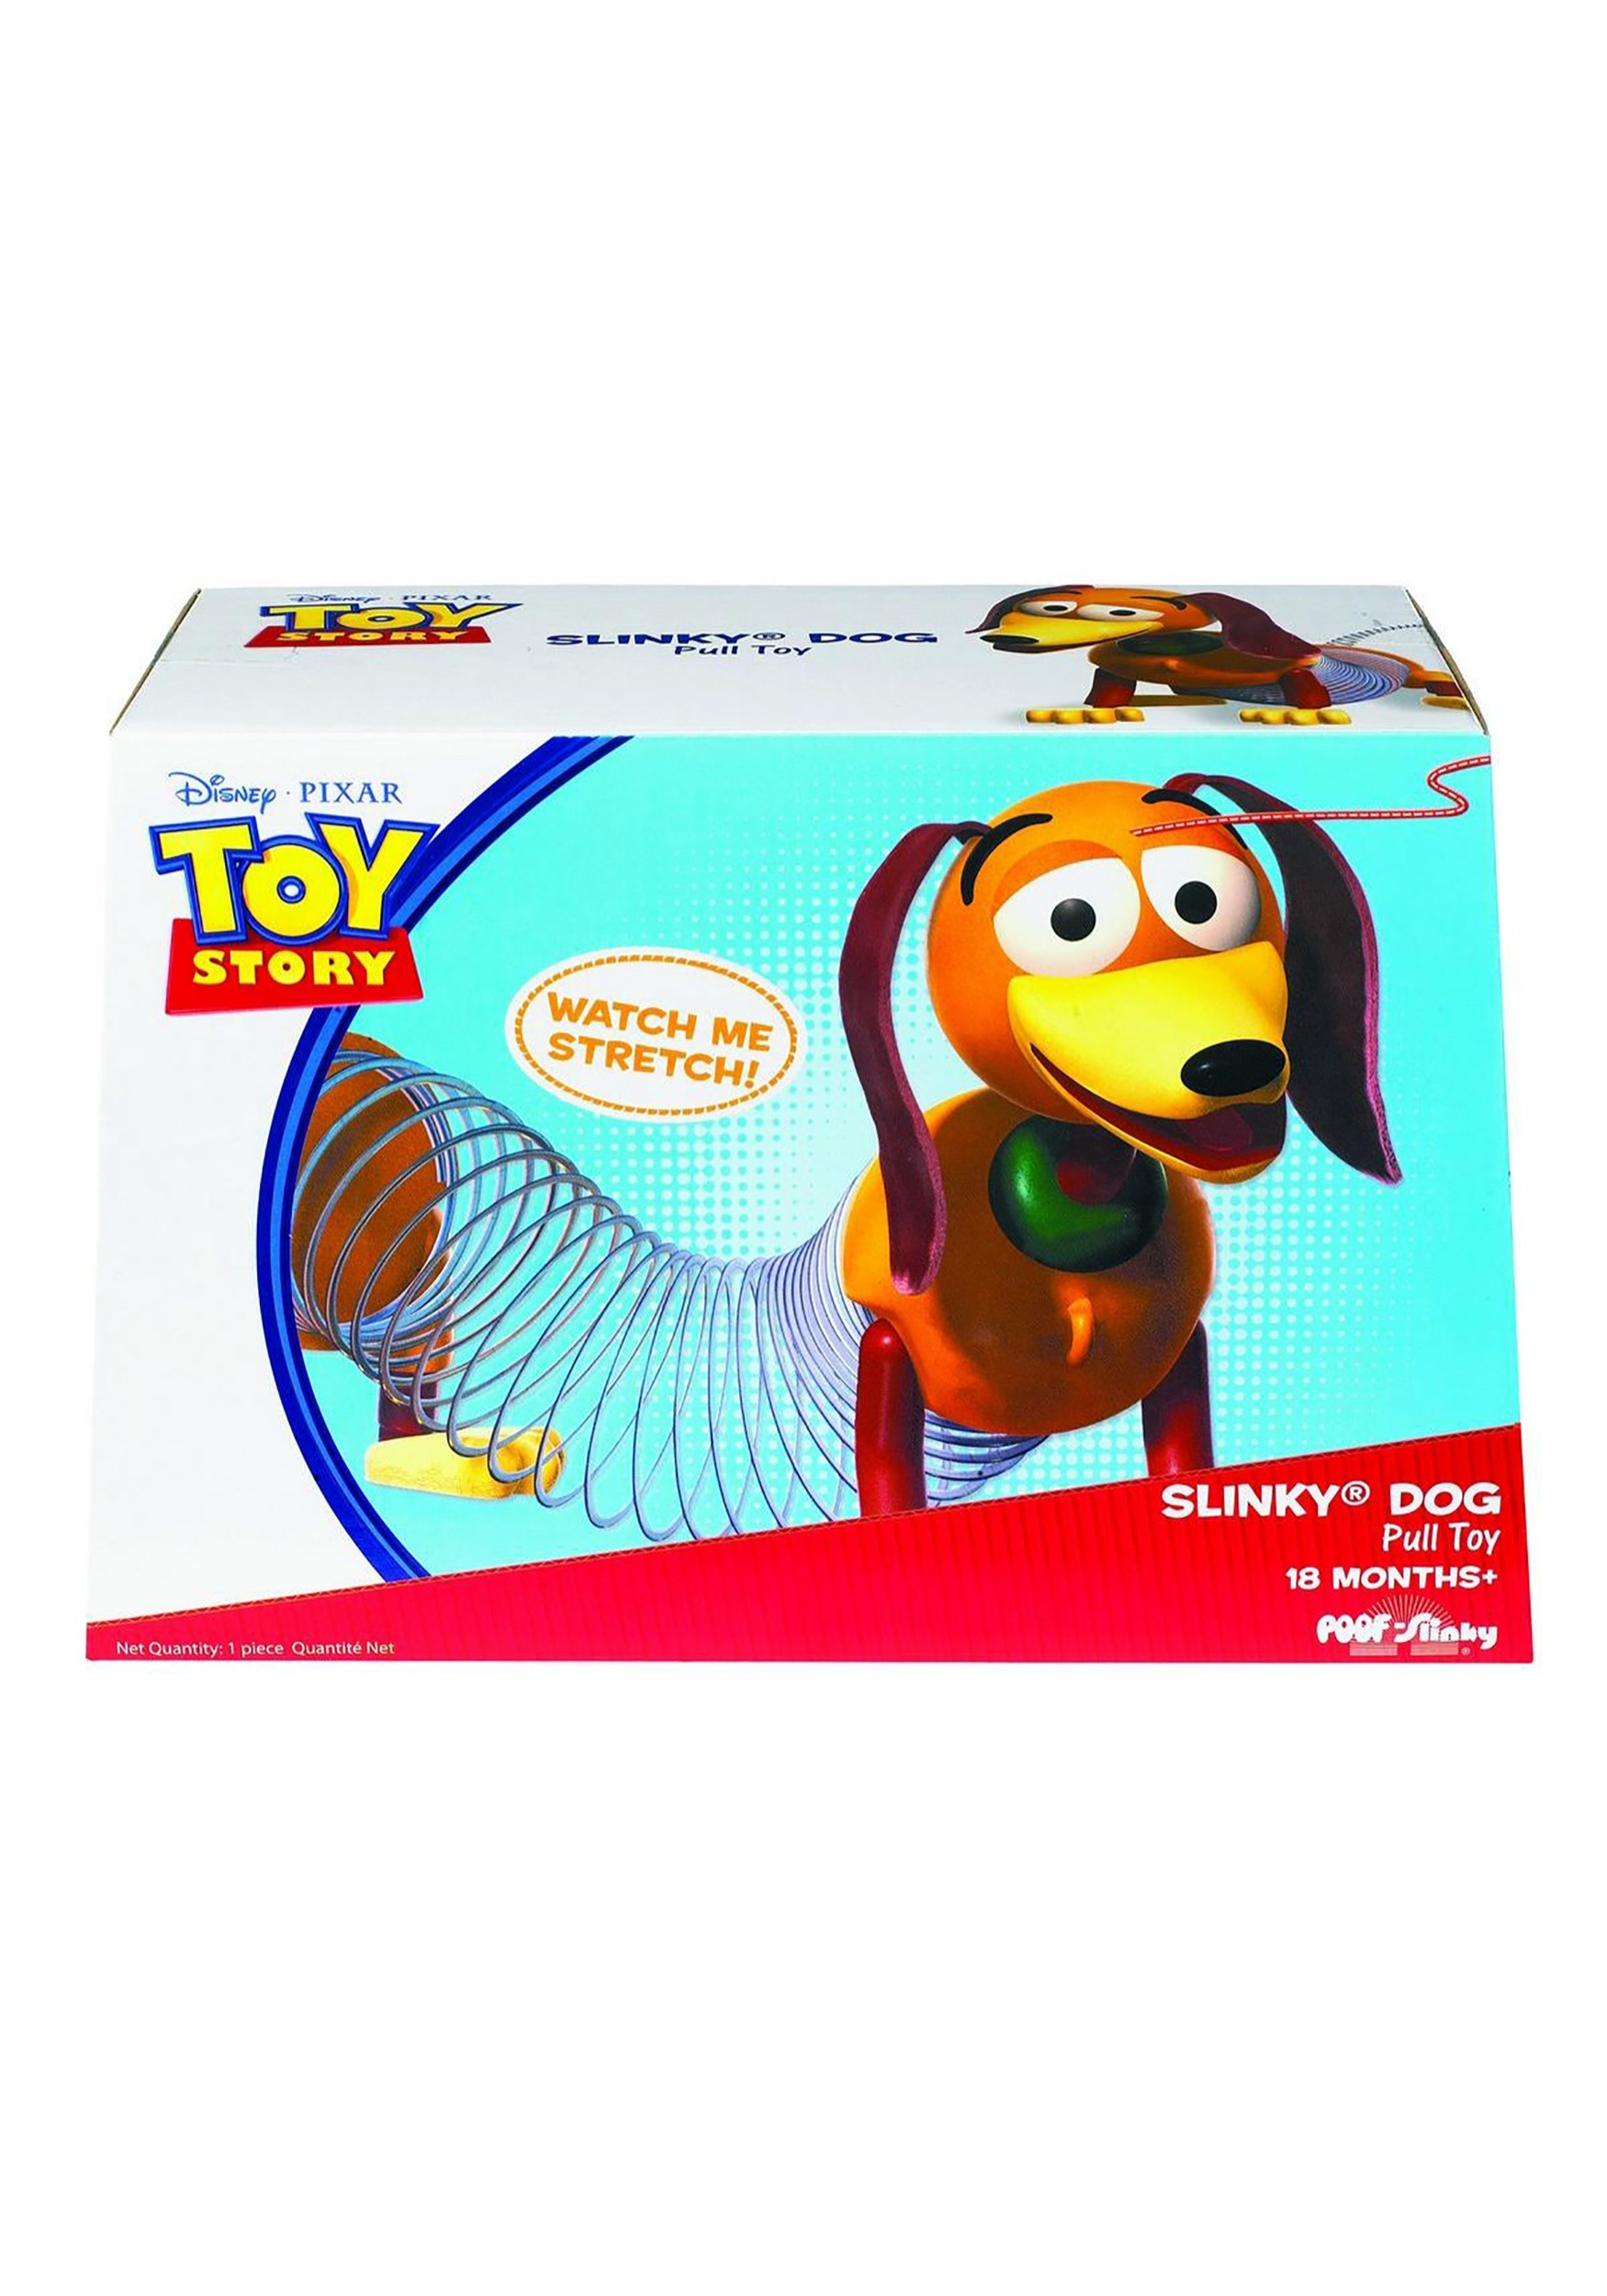 Disneys_Toy_Story_Slinky_Dog